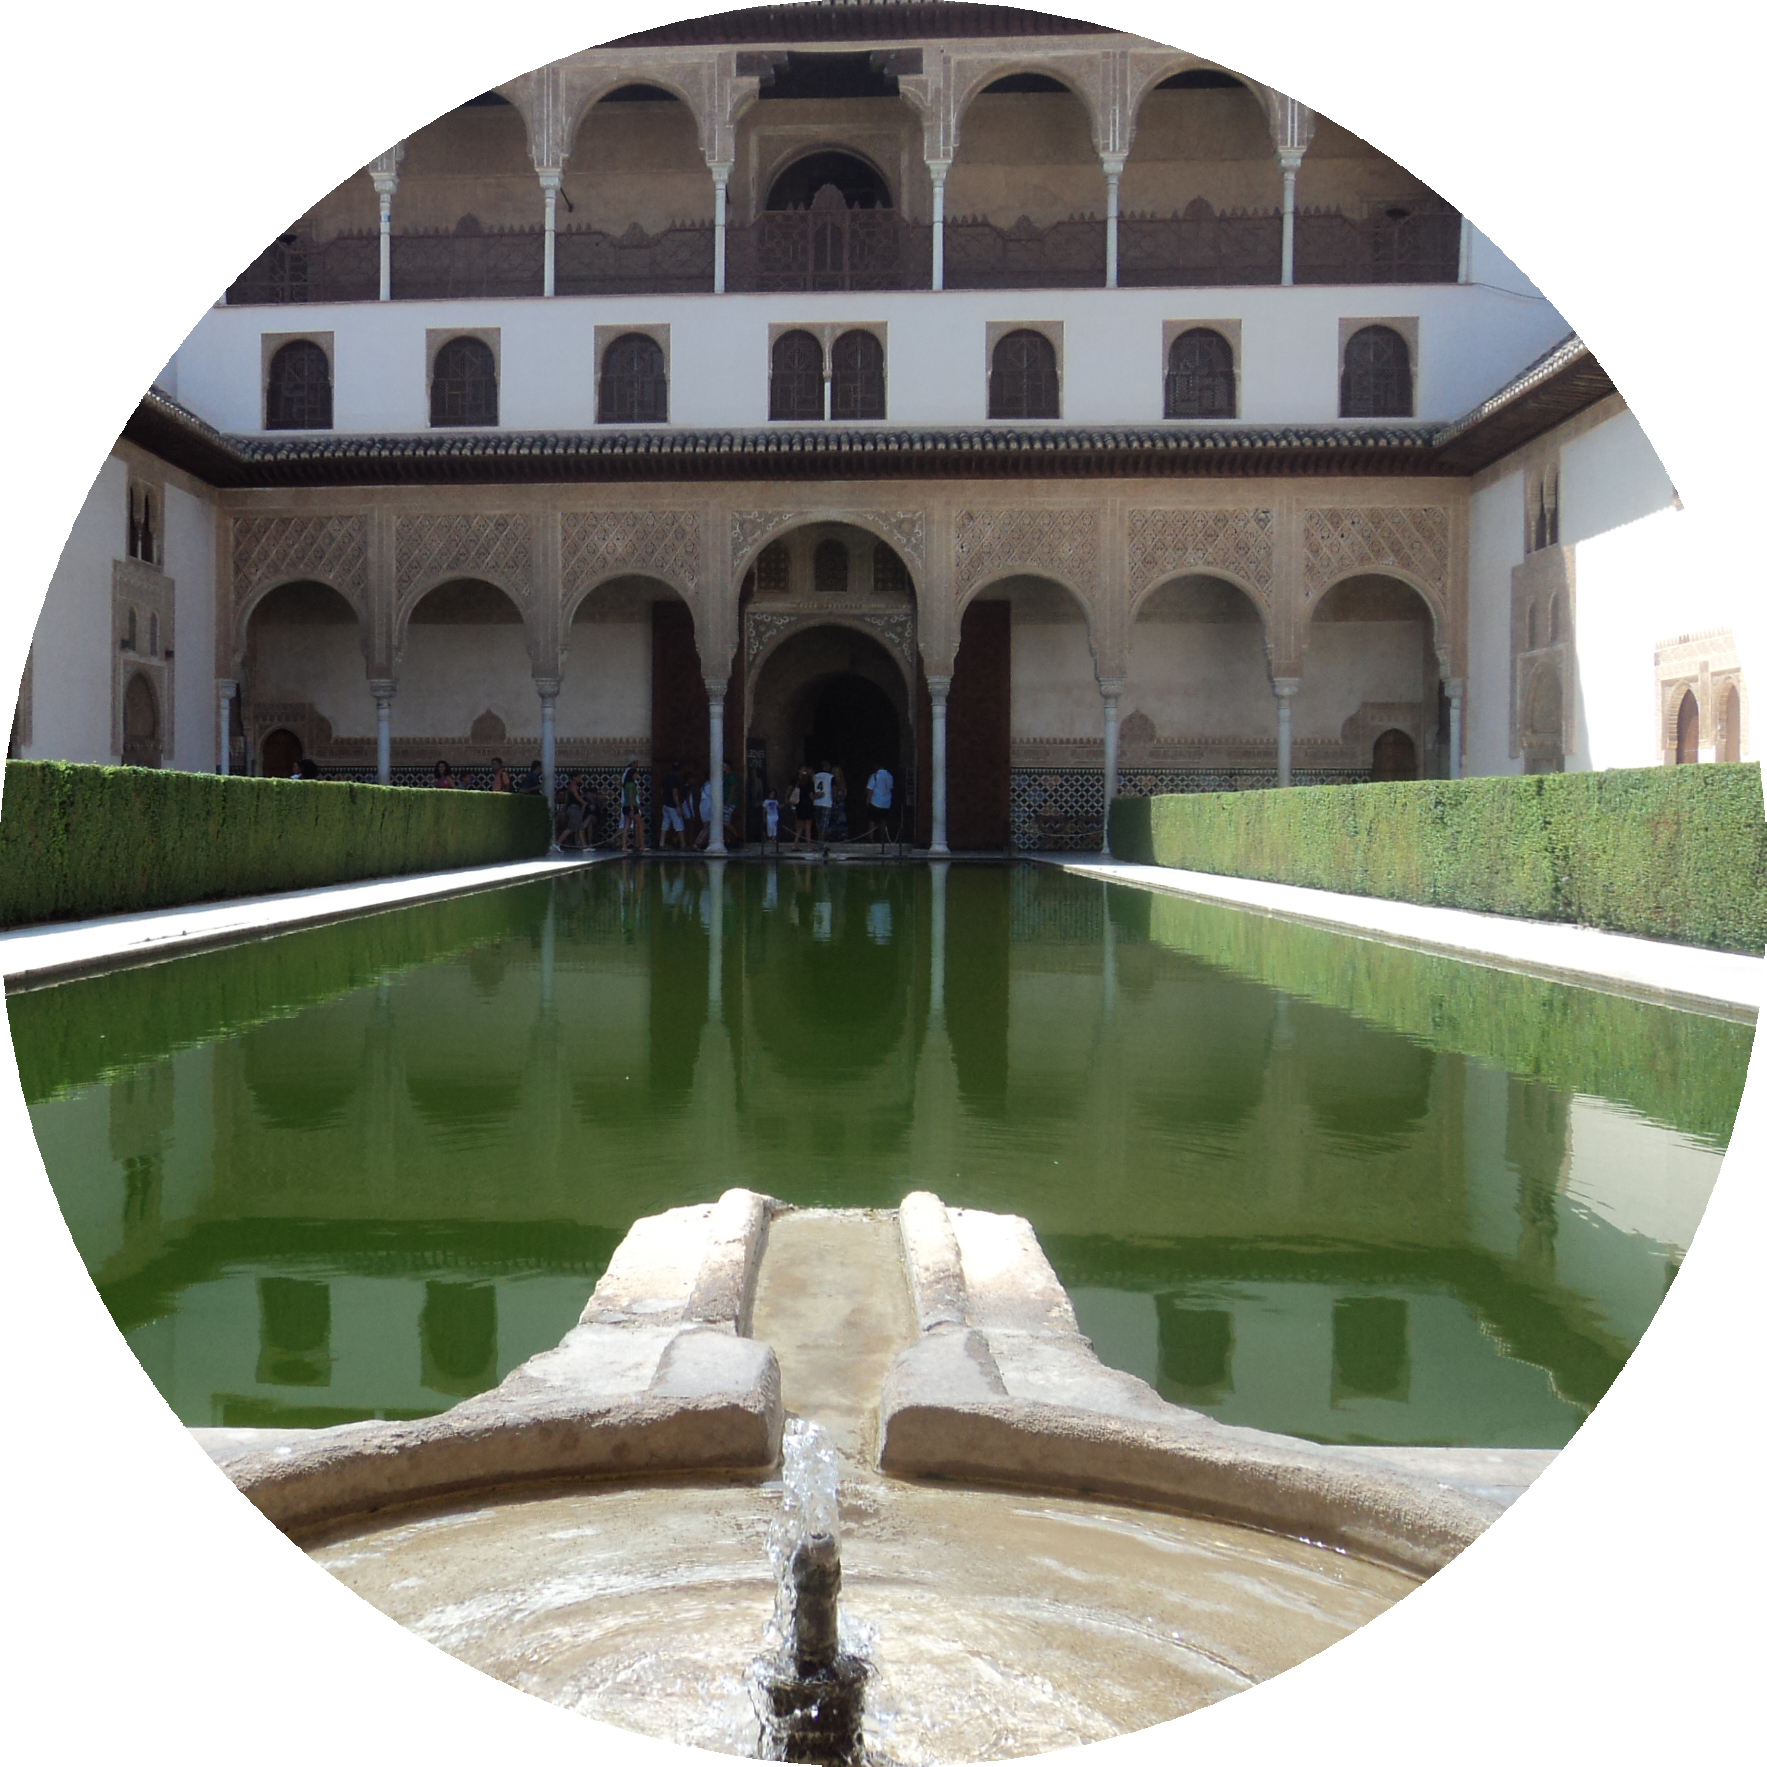 - Court of the Myrtles at the Alhambra. No, the picture isn't centered, shhhhh.